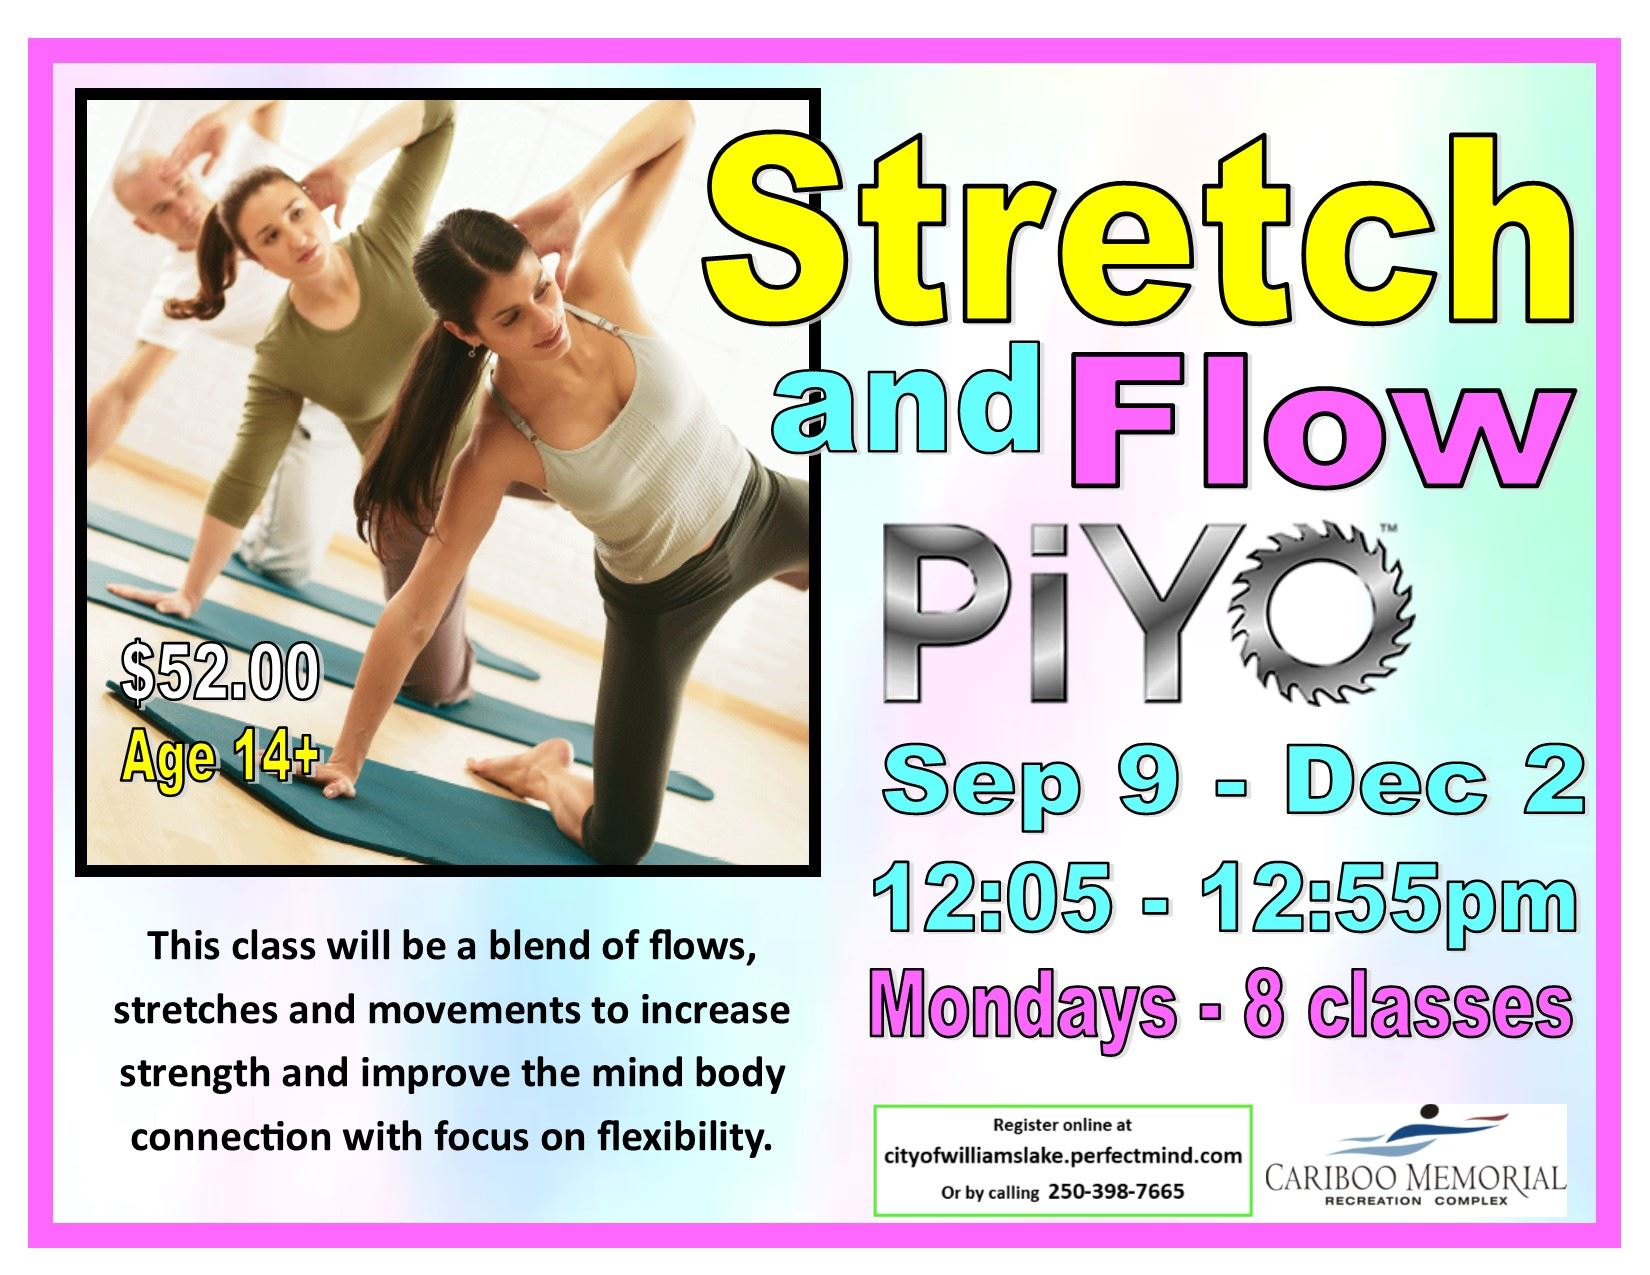 Stretch and Flow Piyo Sep 9